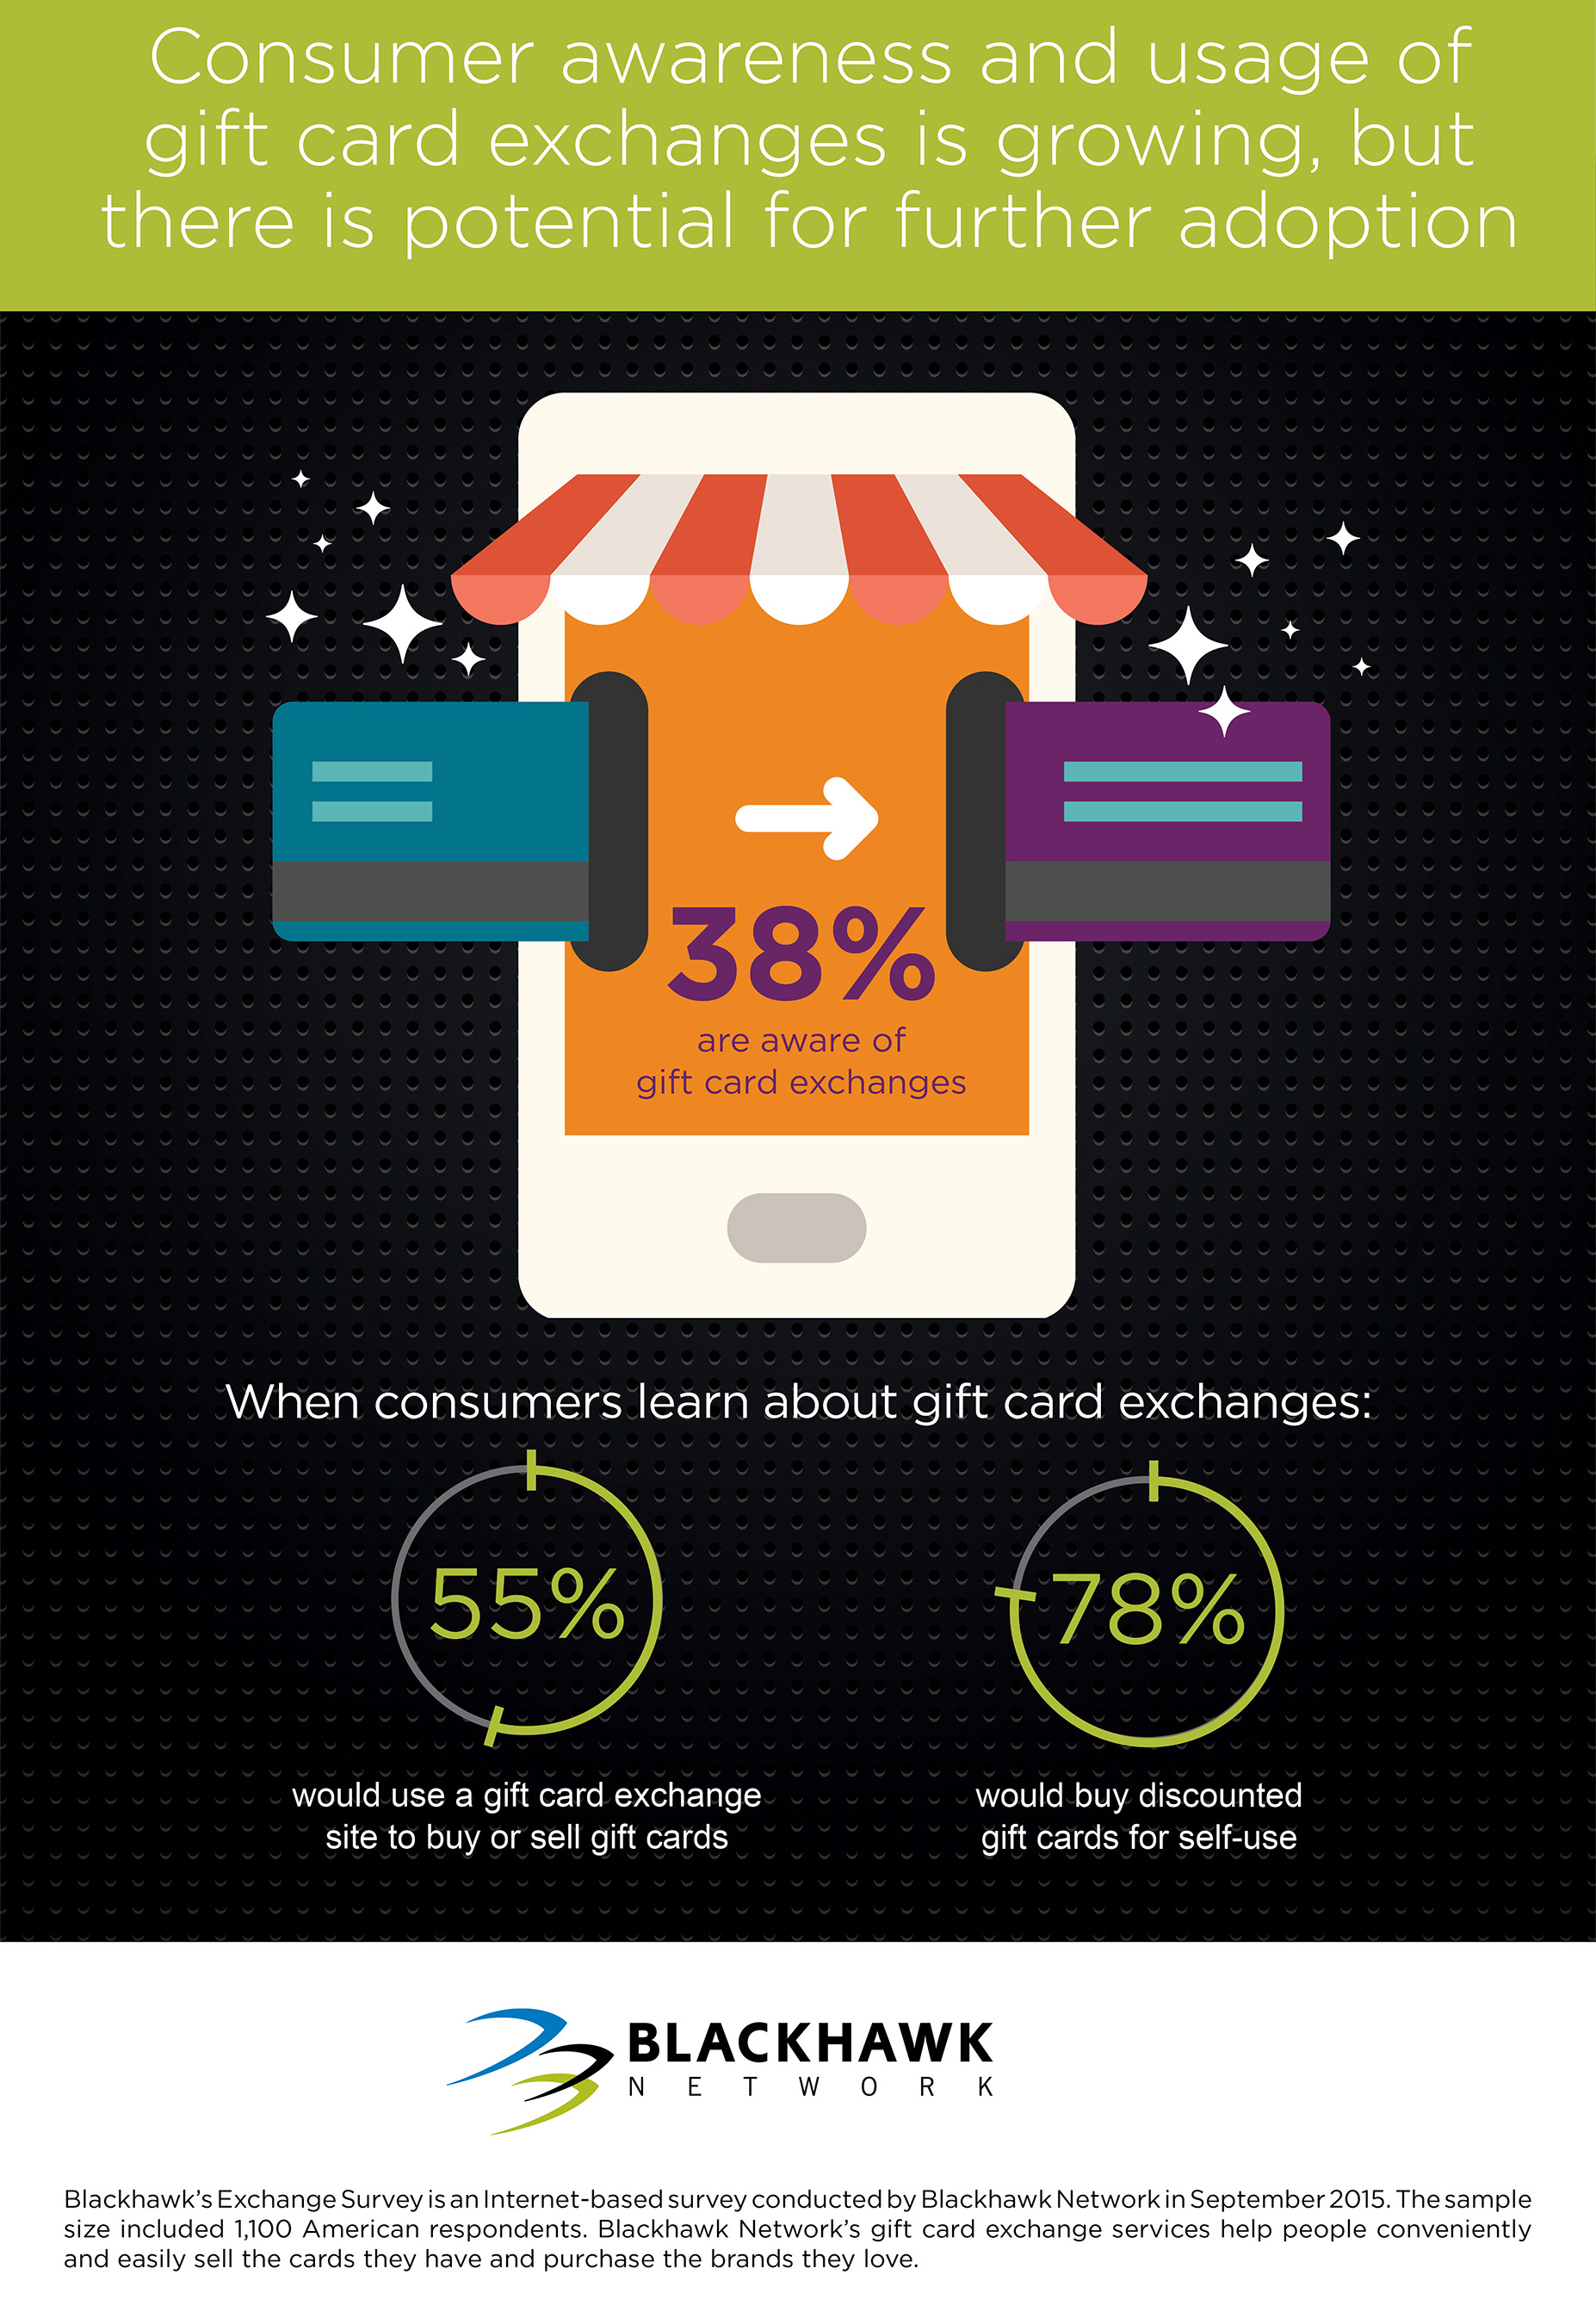 Blackhawk Network Survey Reveals How Consumers Can Get the Most from